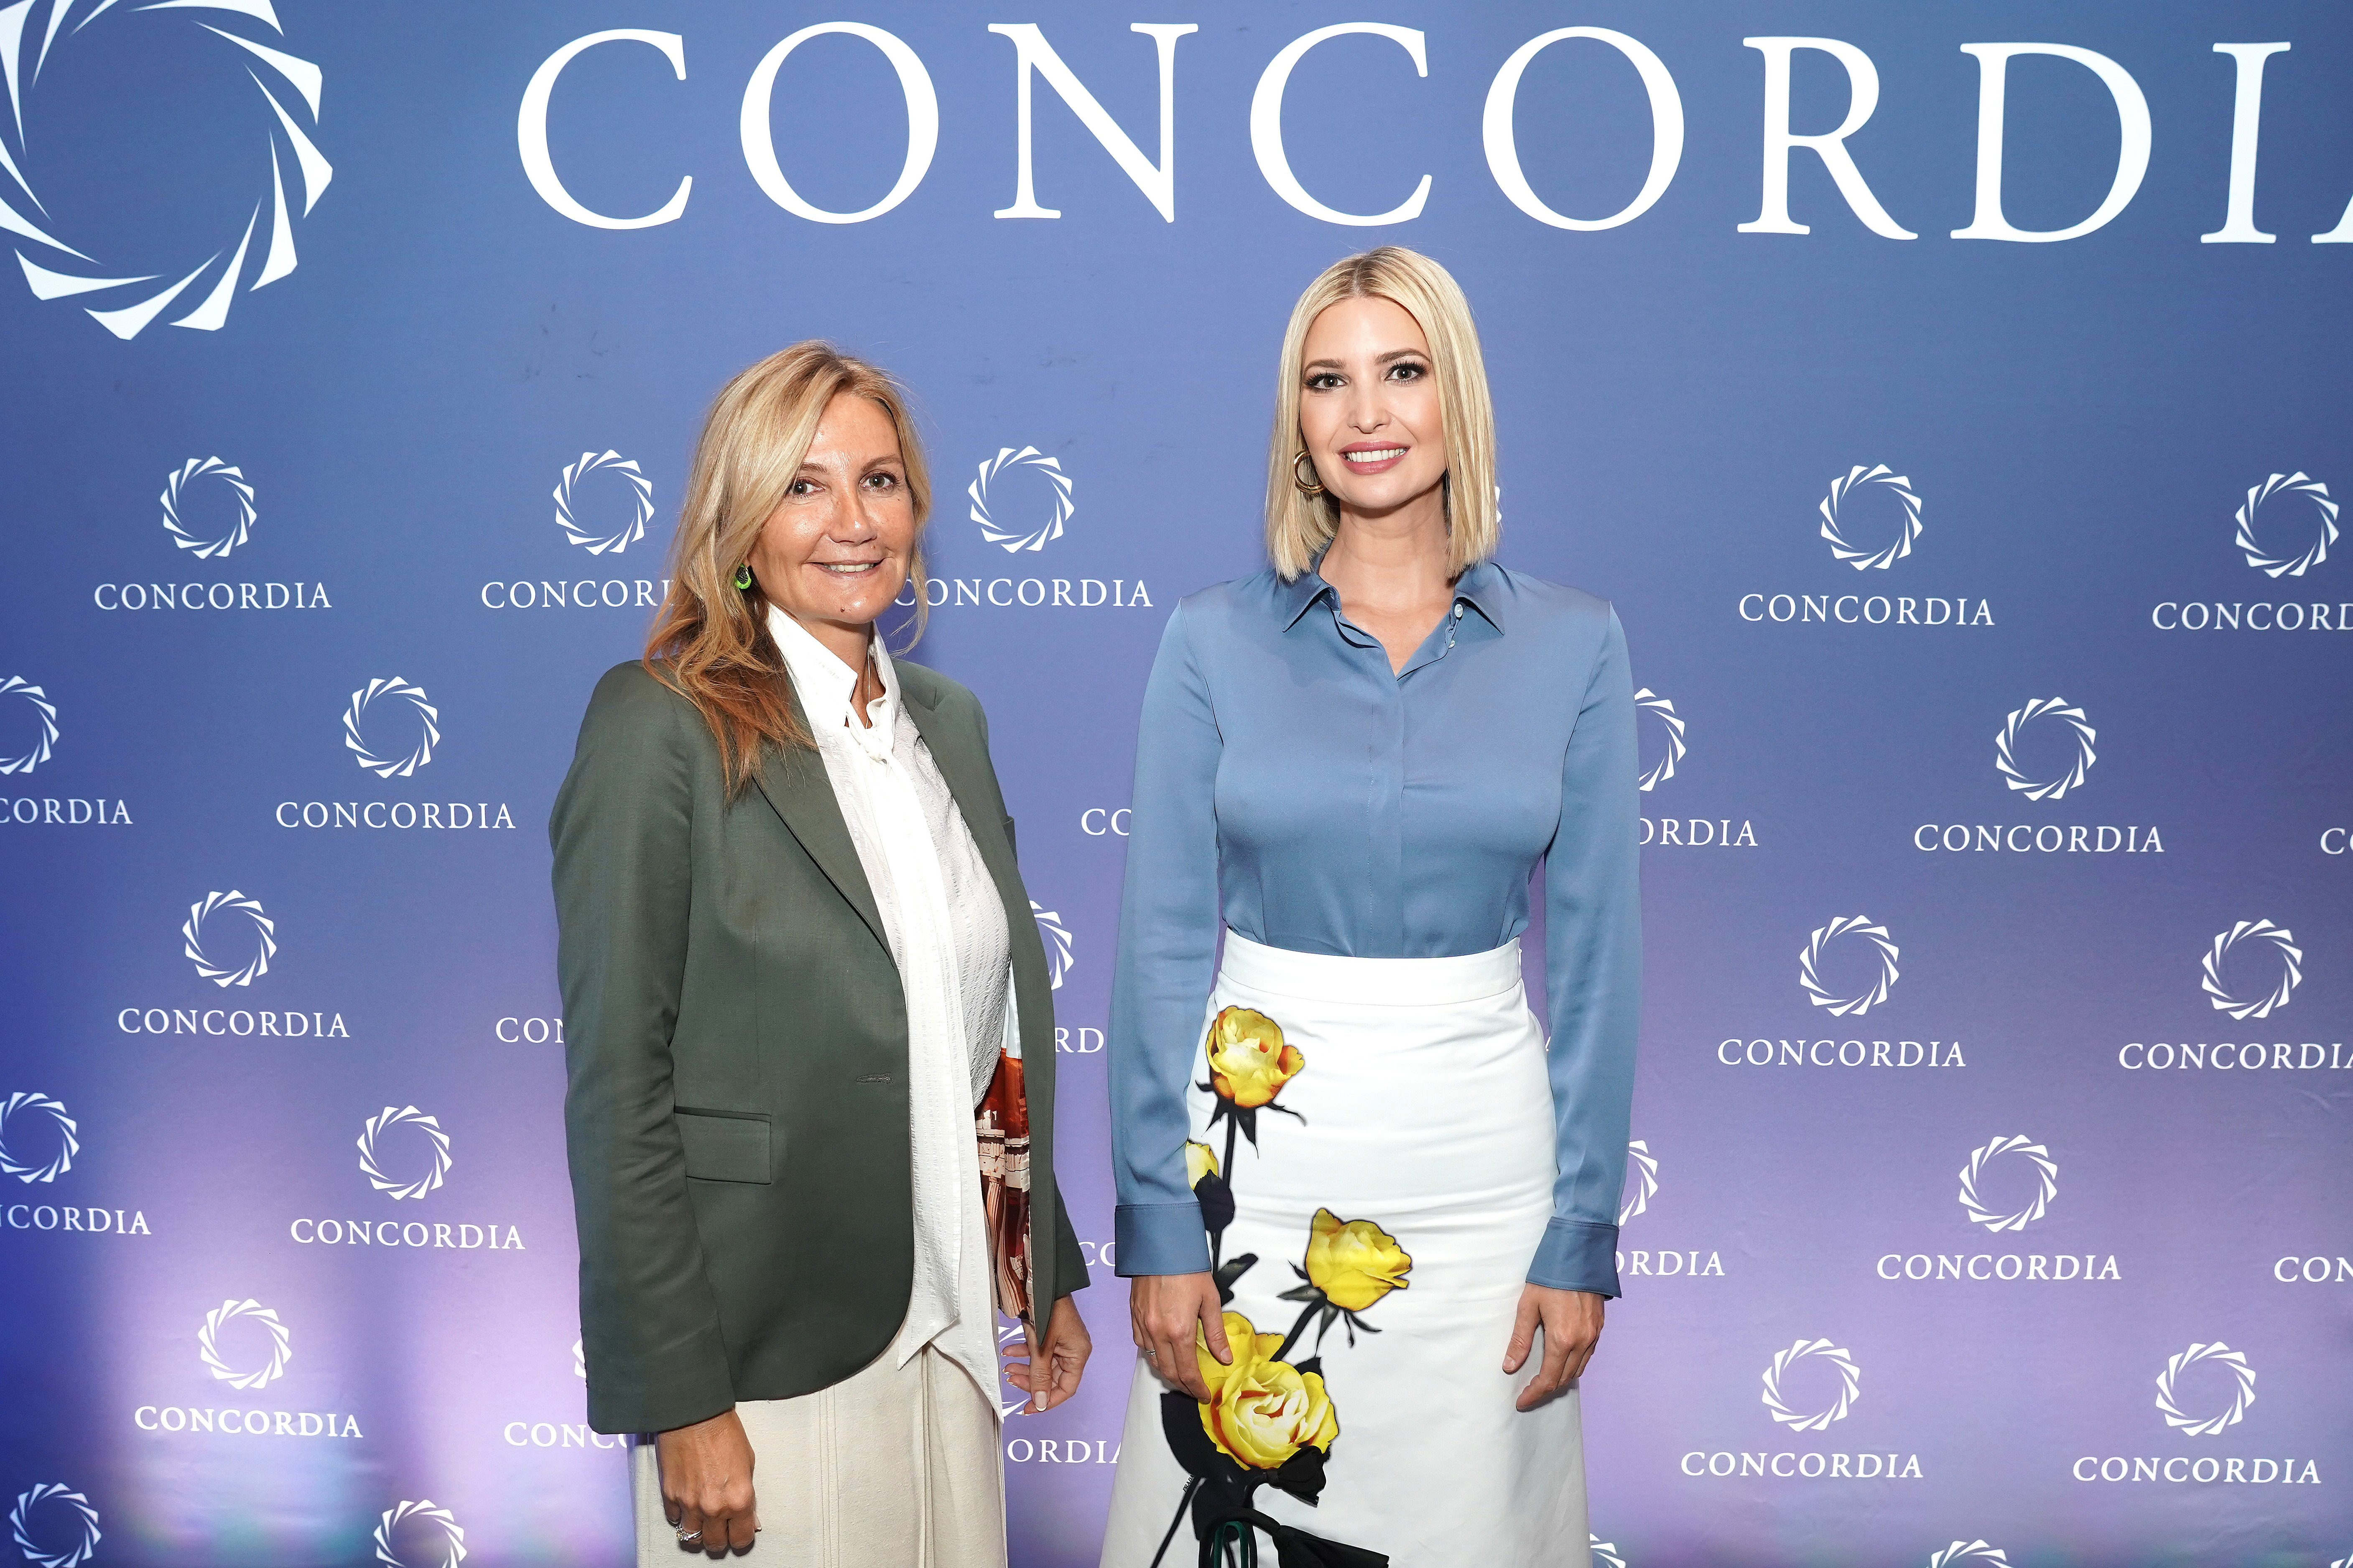 First Lady of Greece, Mareva Grabowski-Mitsotakis and Advisor to the President Ivanka Trump pose for a picture during the 2019 Concordia Annual Summit - Day 1 at Grand Hyatt New York on September 23, 2019 in New York City | Photo: Getty Images